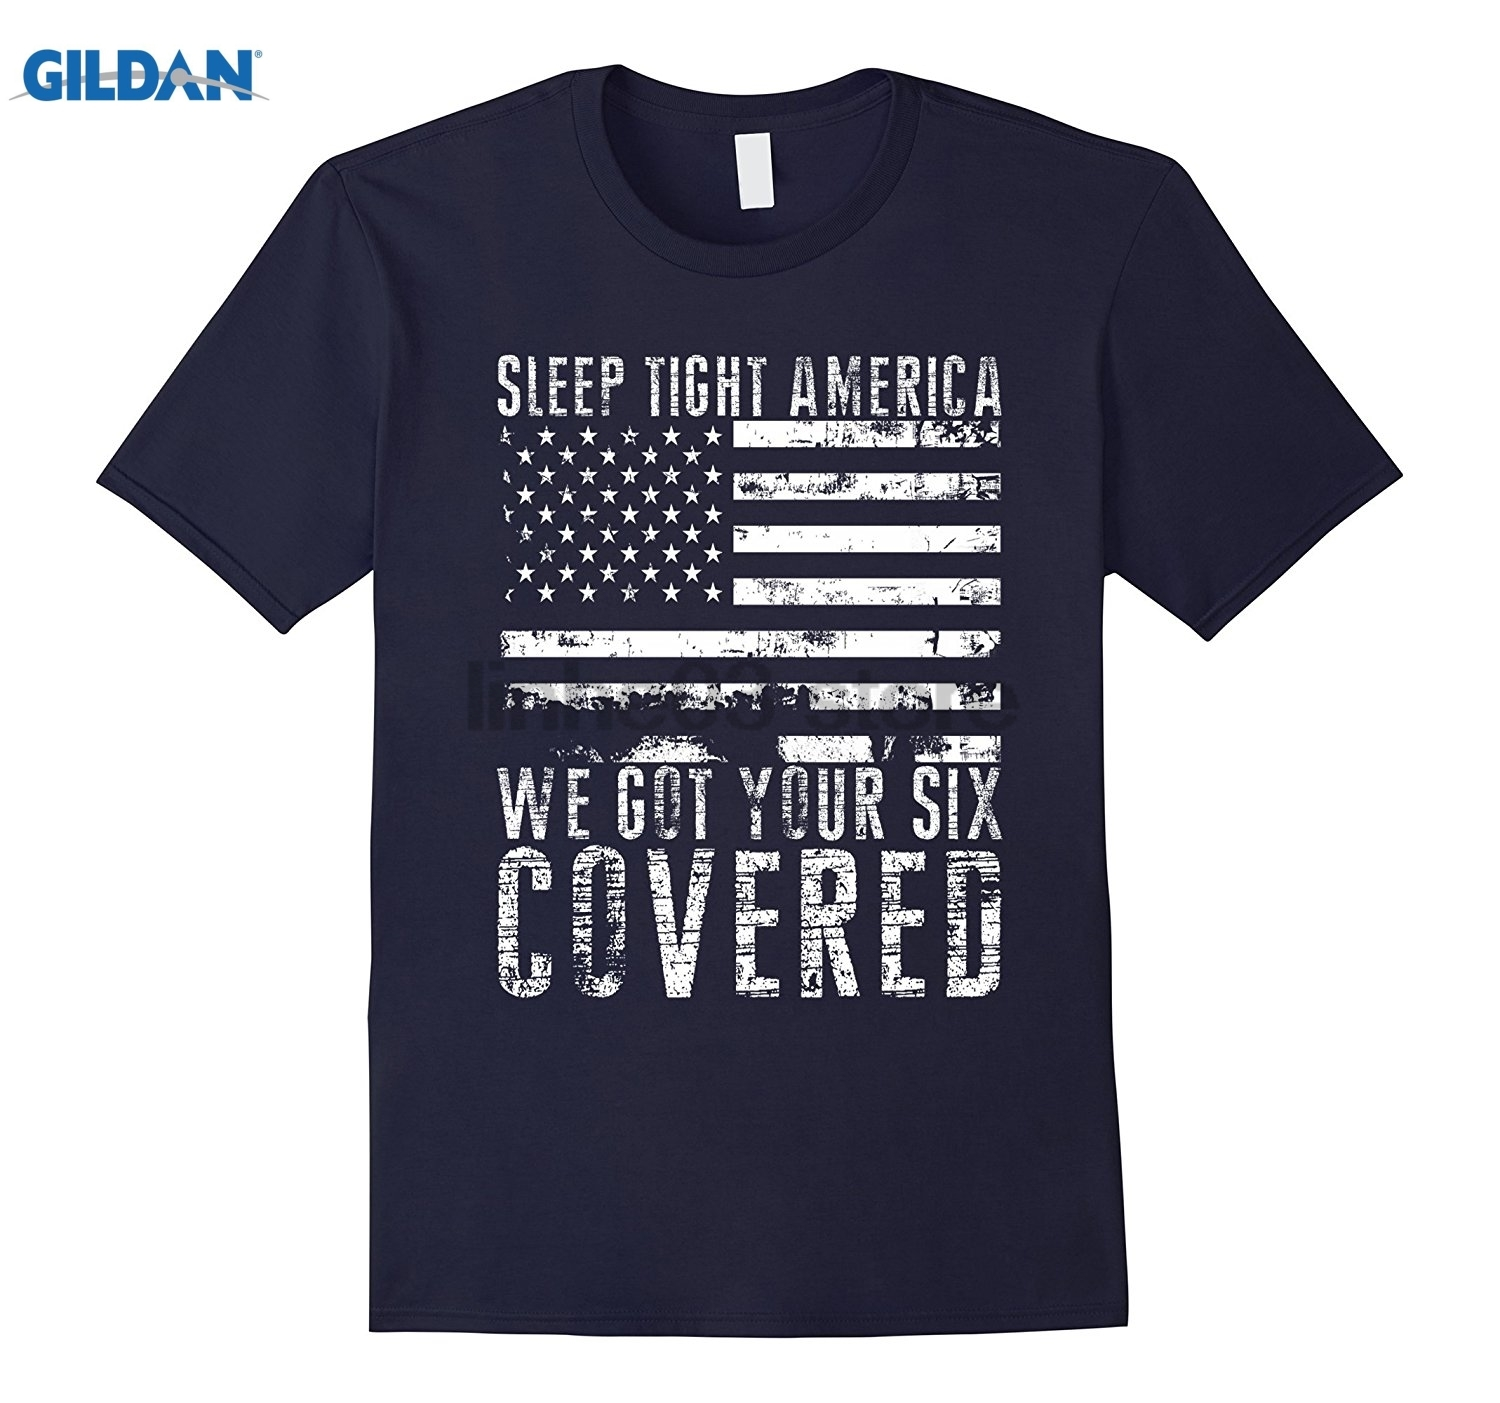 GILDAN Sleep Tight America We Got Your SIX Cover T-shirt Womens T-shirt Dress female T-shirt